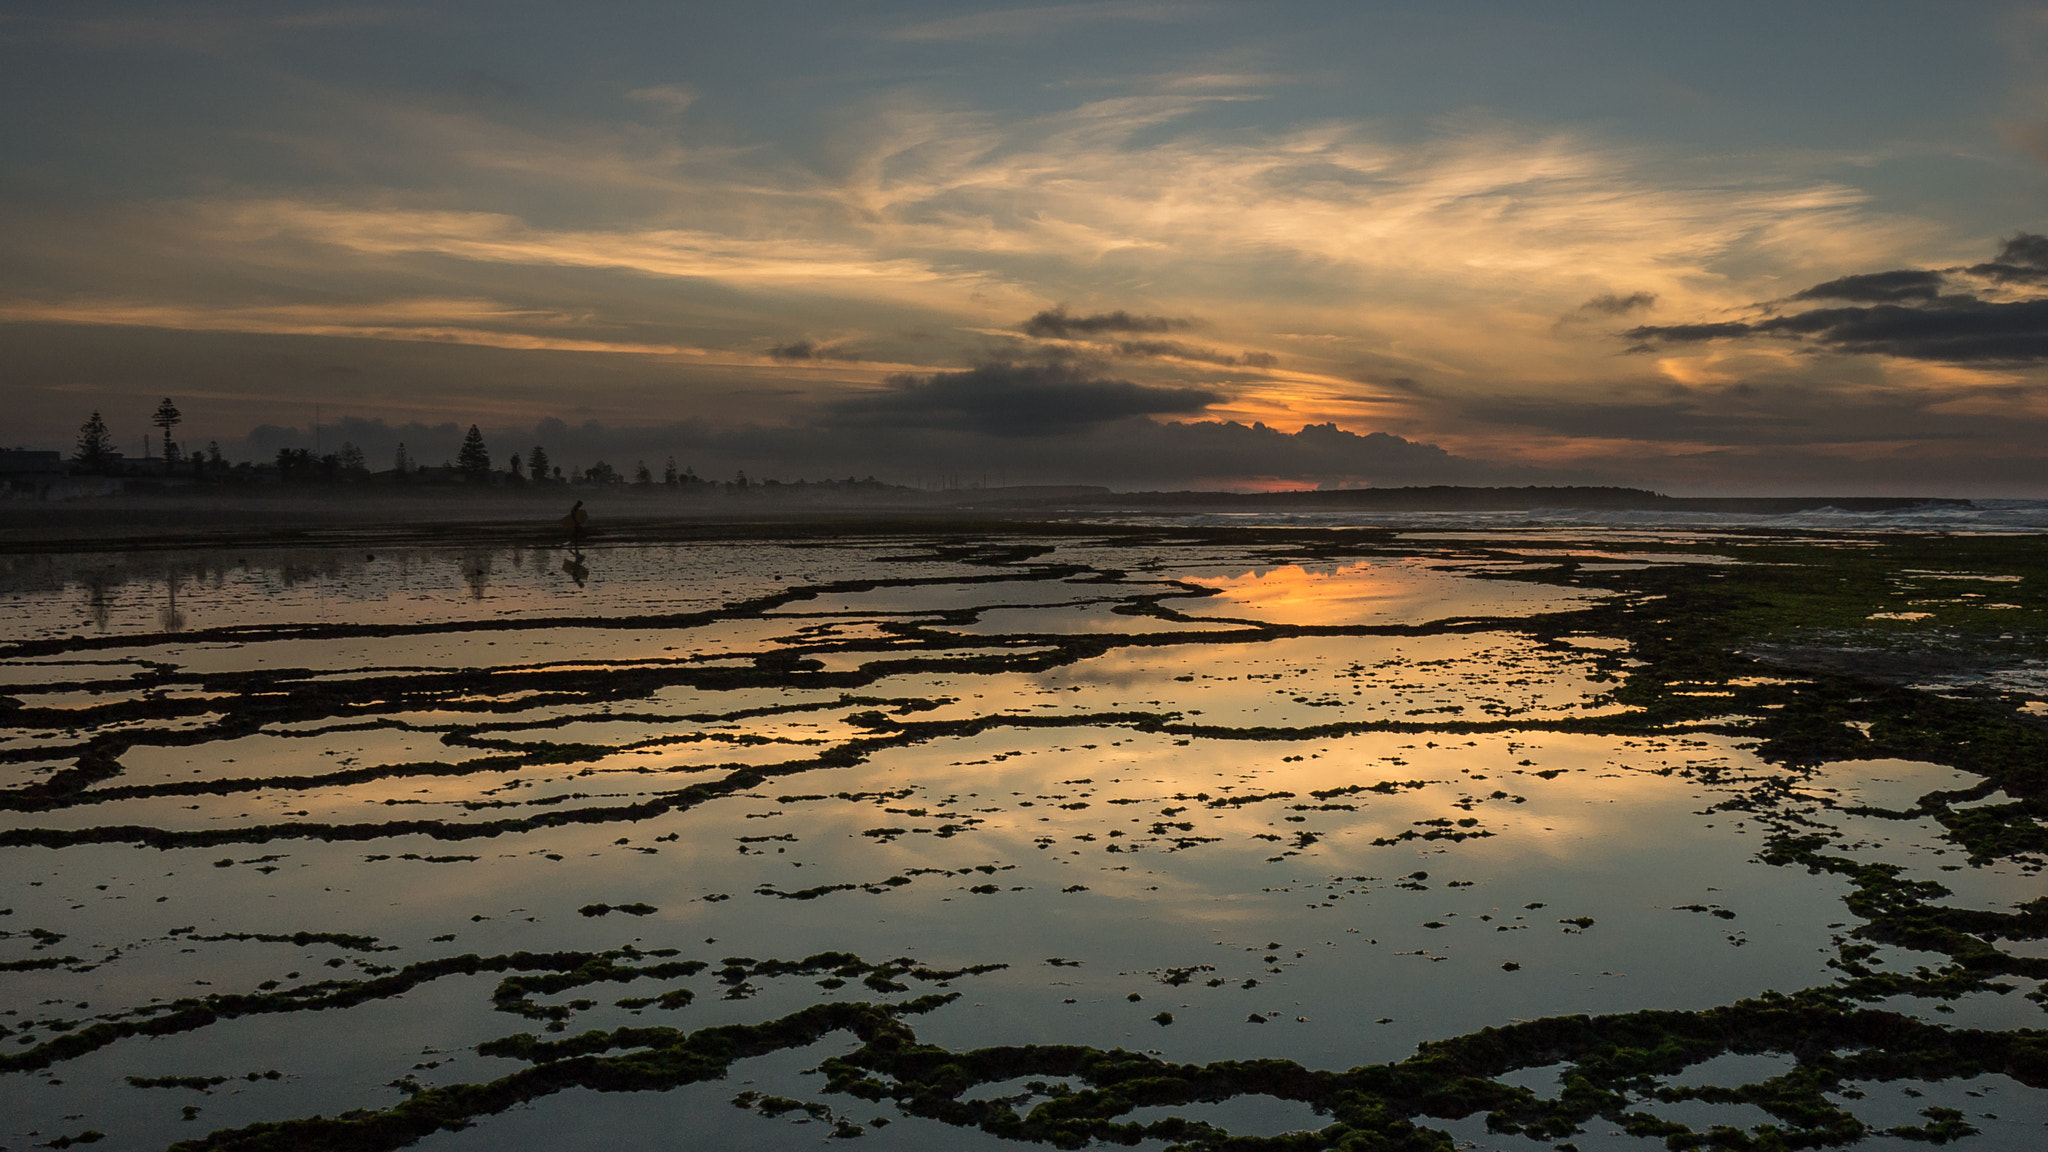 Photograph Heinek... Sunset - 2 by Amine Fassi on 500px